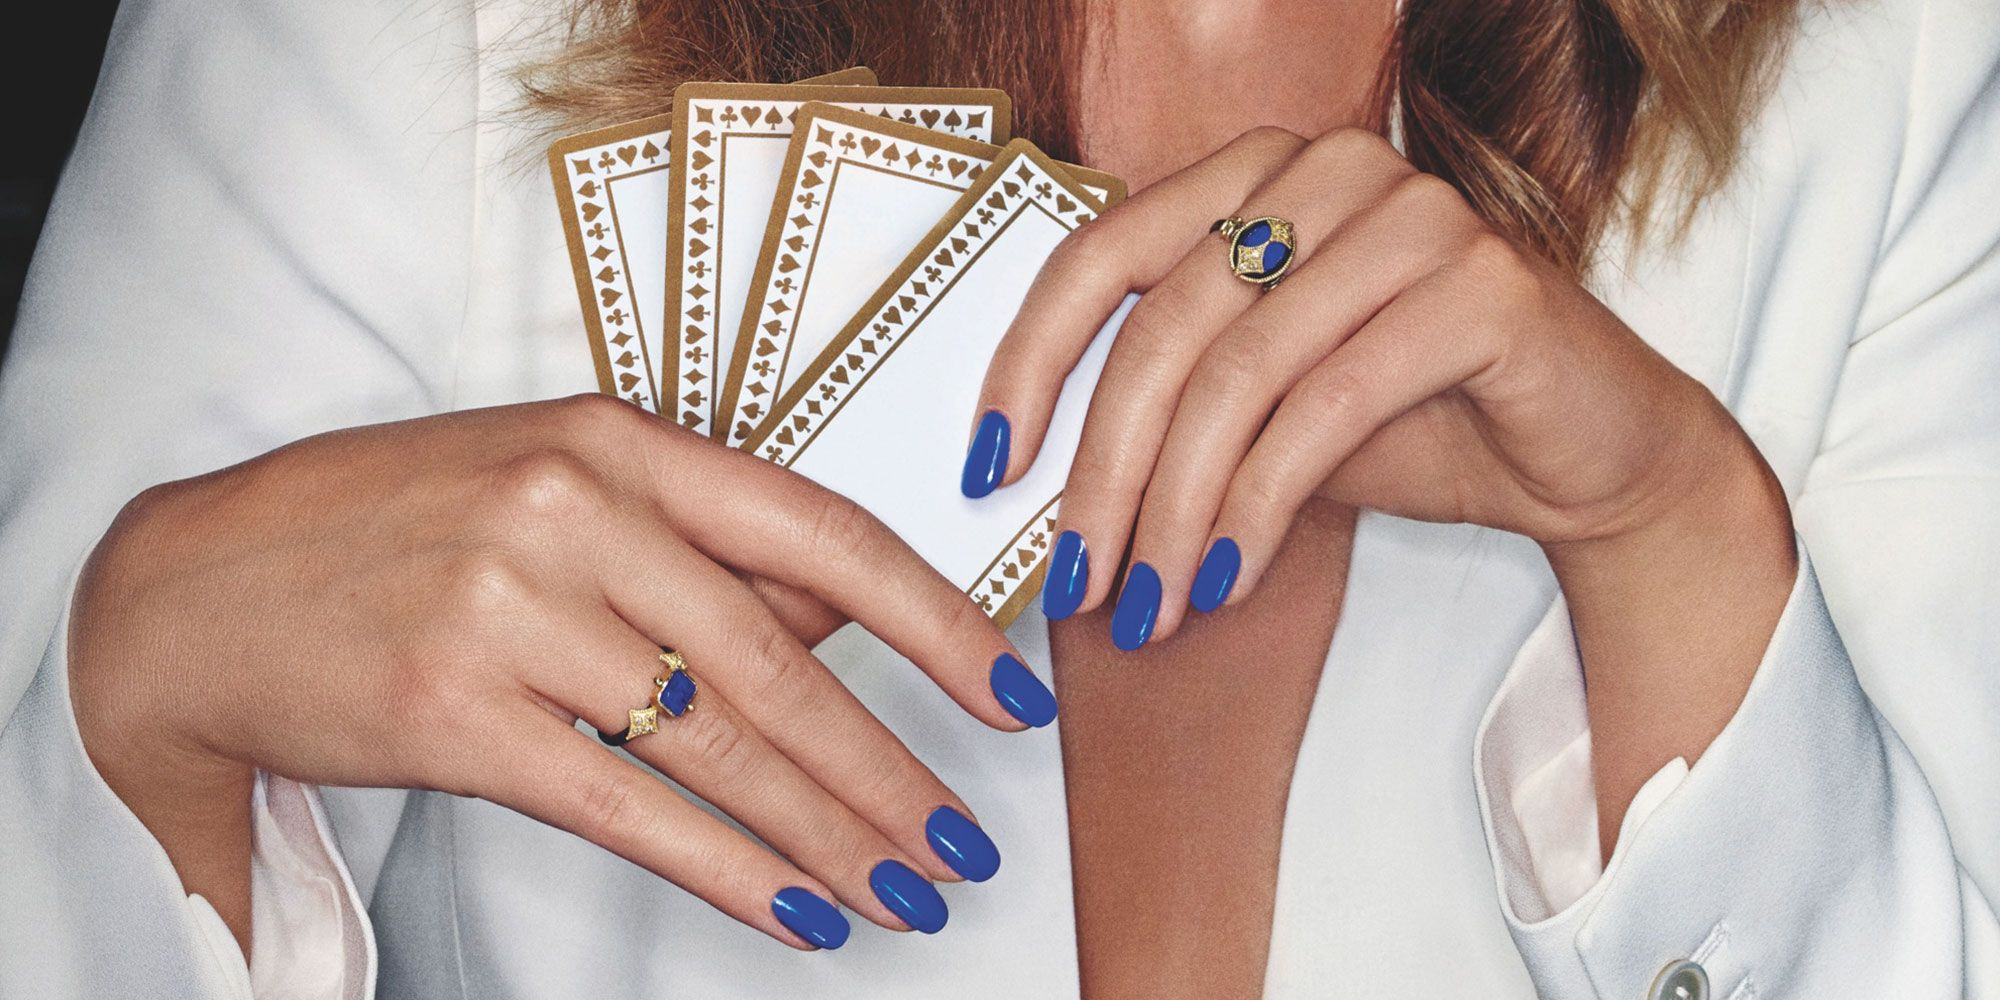 How To Get Perfect Nail Polish Expert Tips To A Professional Paint Job